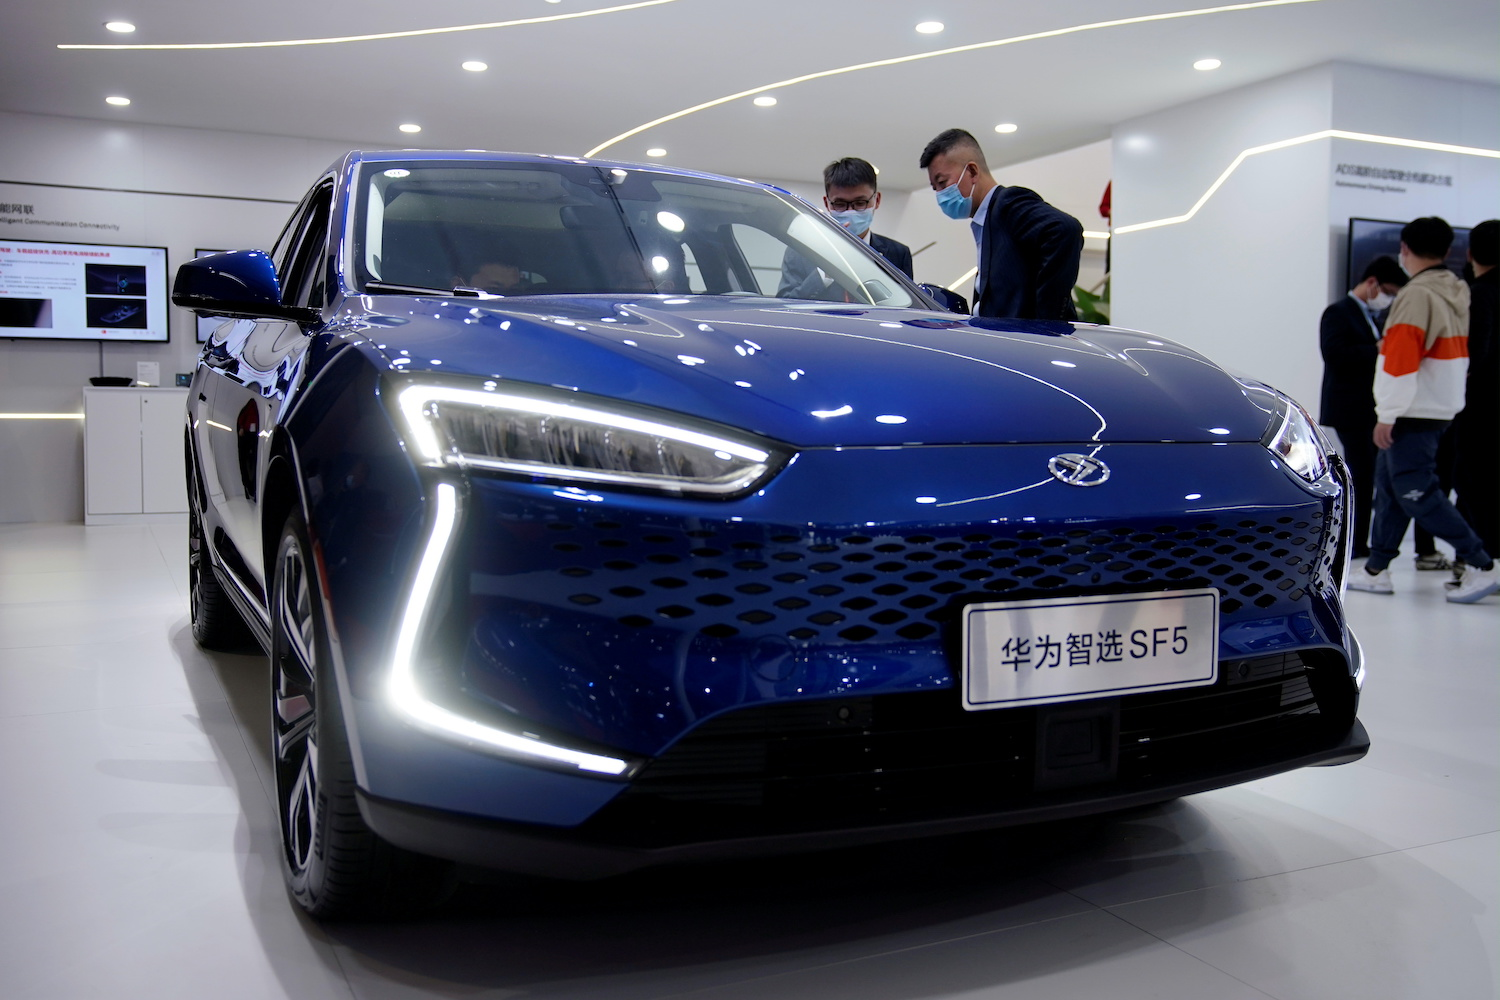 Huawei's carmaker move signals major EV gear shift